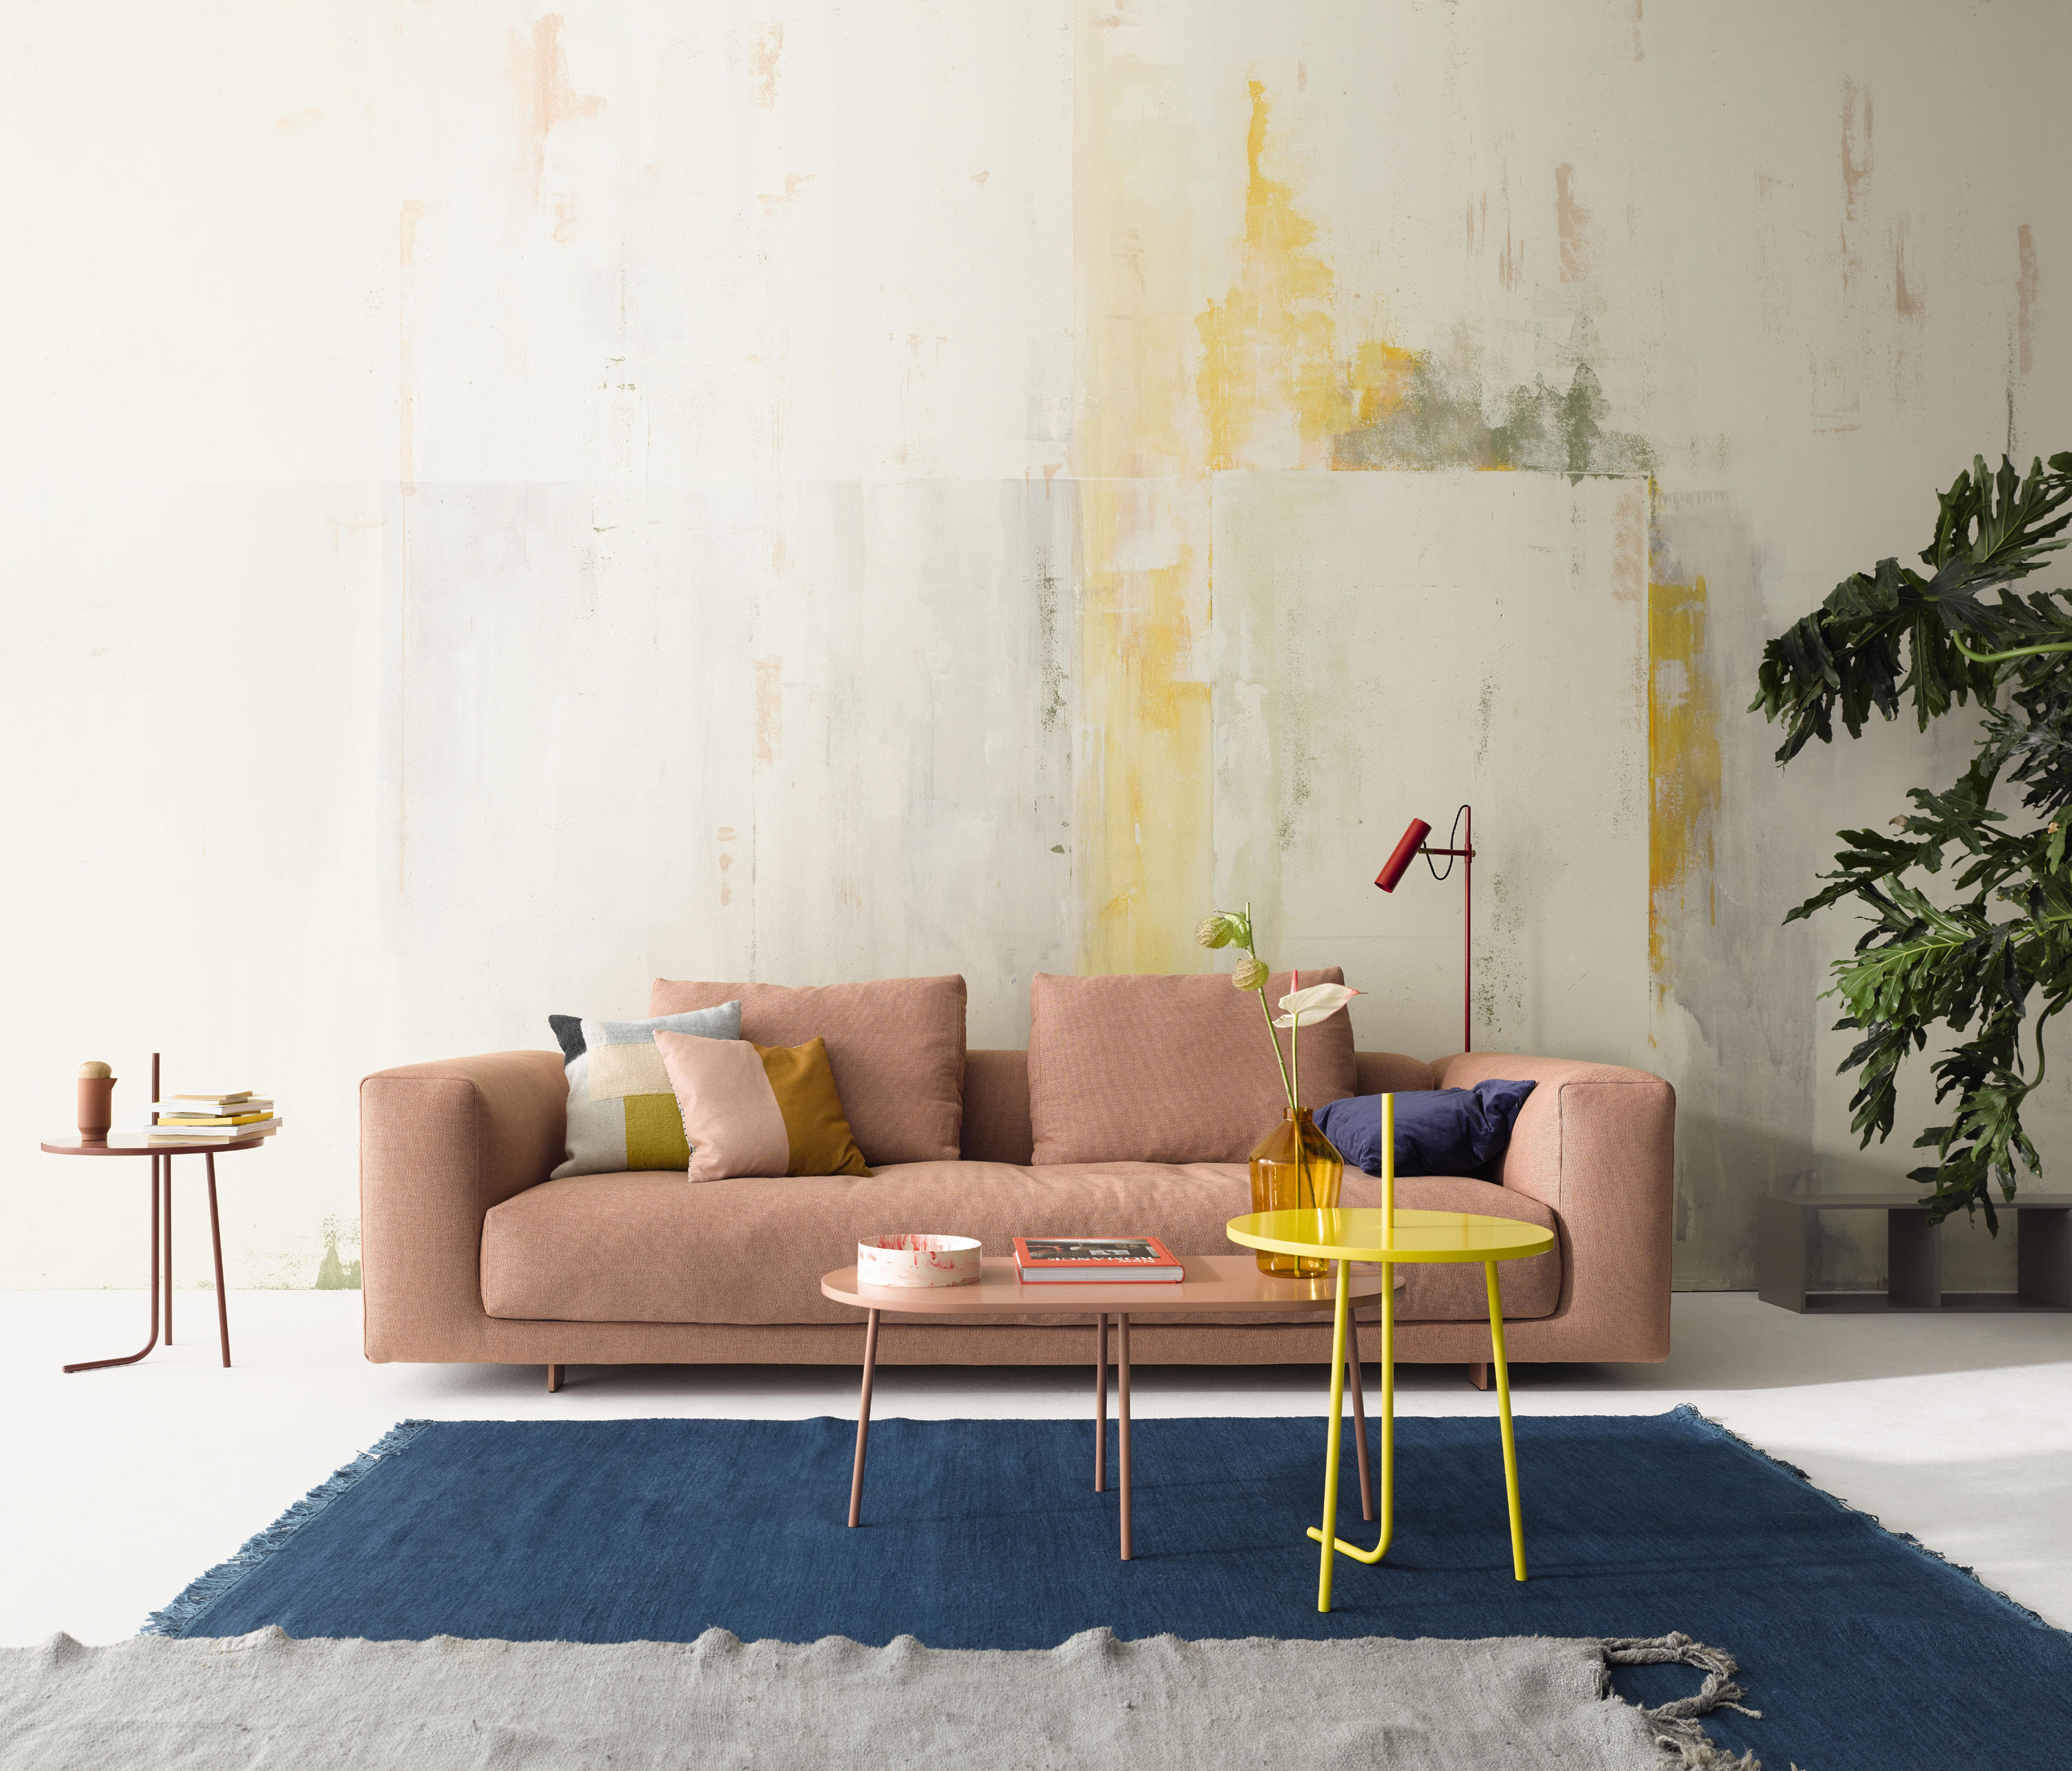 Moss Sofa by Jehs+Laub for COR